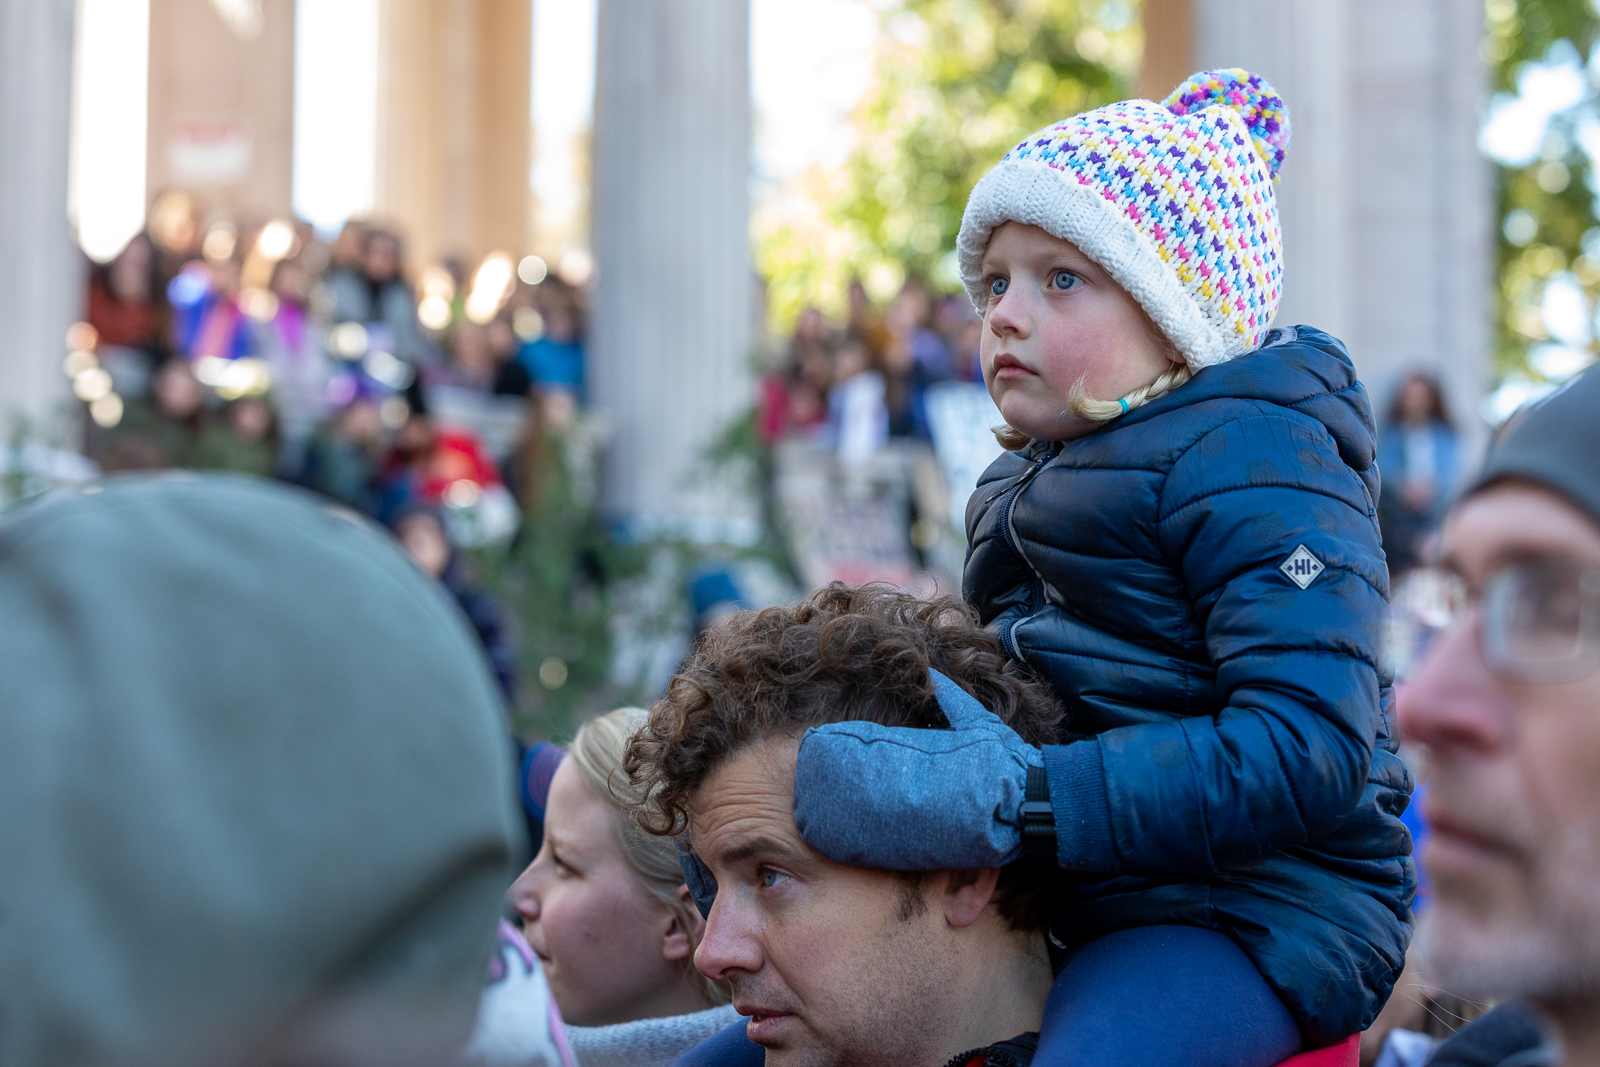 A girl watches speakers at the climate strike from the shoulders of a man. Photo: Andy Bosselman, Streetsblog Denver